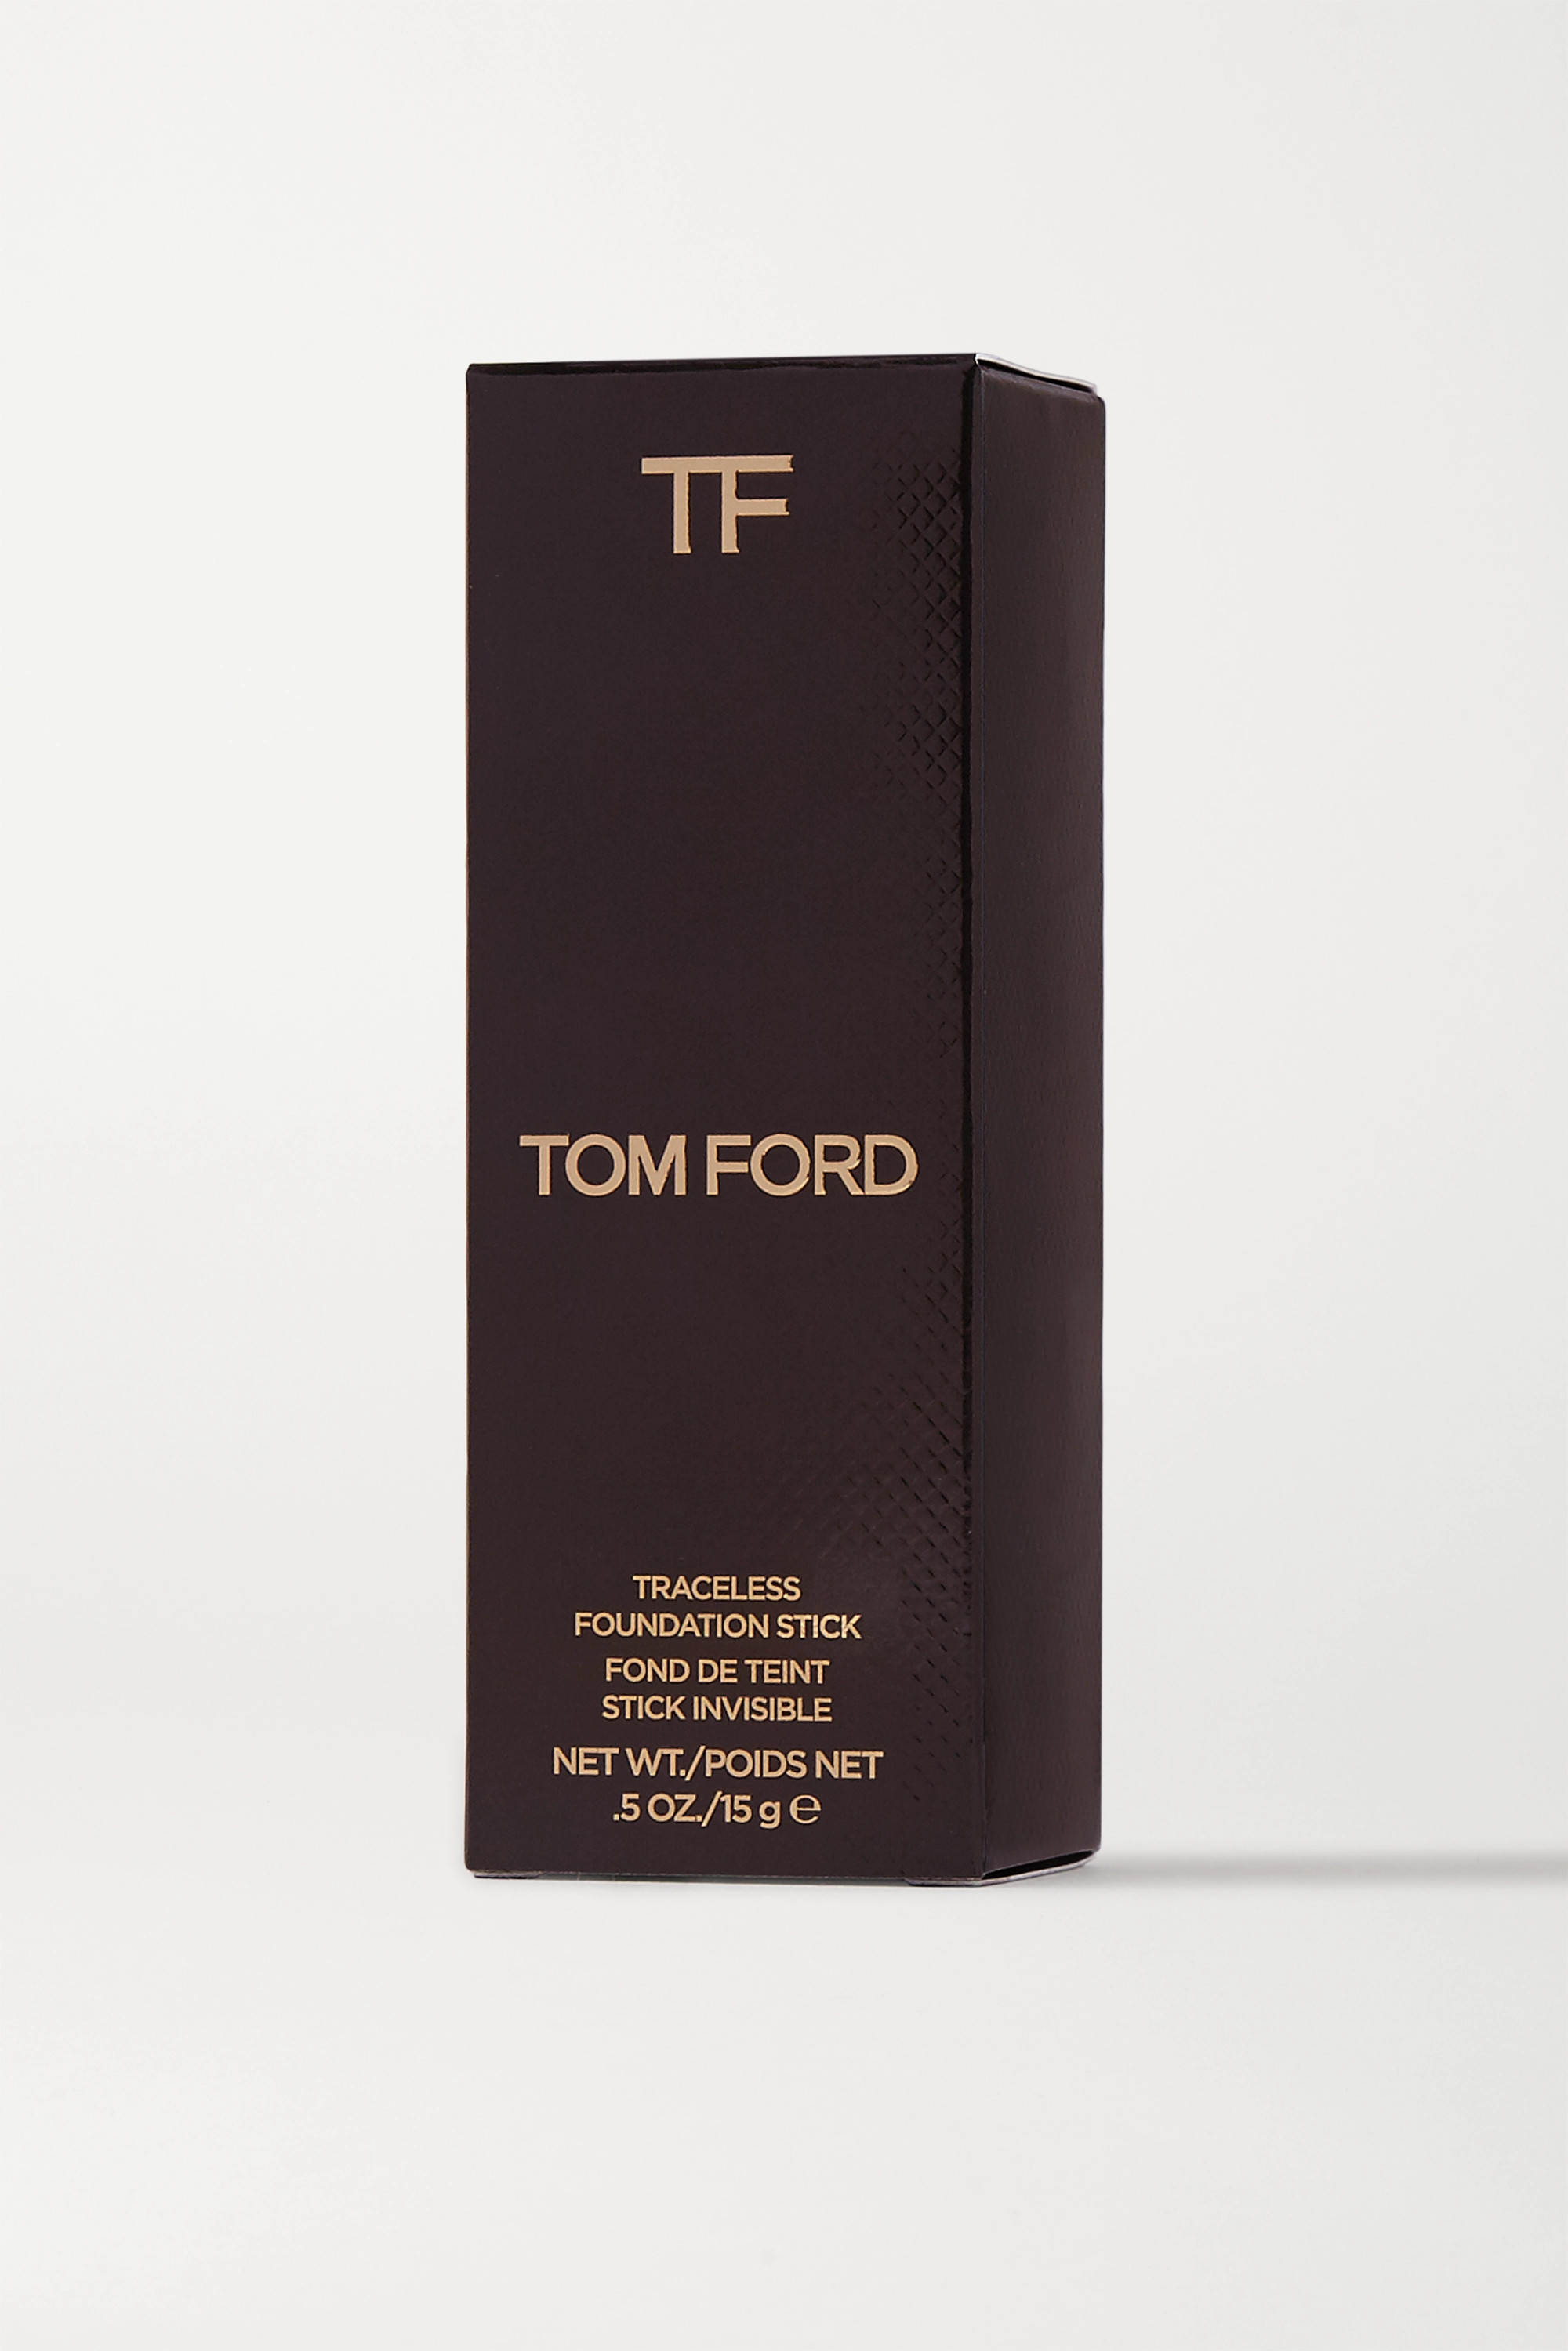 TOM FORD BEAUTY Fond de teint stick Invisible, 5.6 Ivory Beige